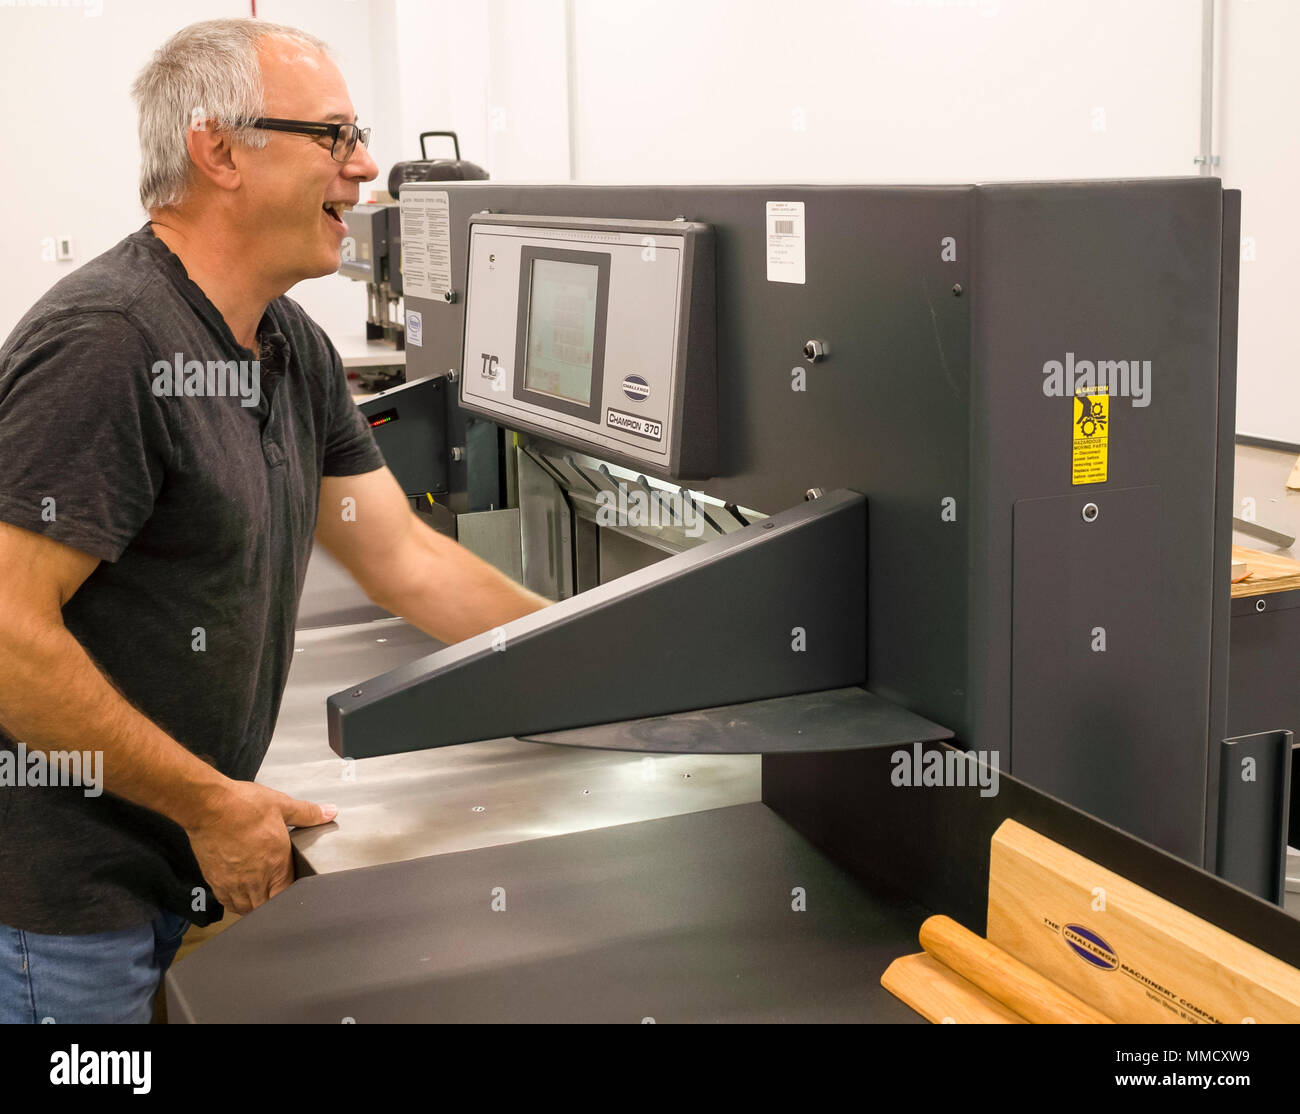 Dennis Fickel, Department of Energy Material Office, Naval Supply Systems Command, Weapon Systems Support, uses a bulk paper cutter in the newly opened print center, Oct. 11, in Mechanicsburg, Pa. - Stock Image